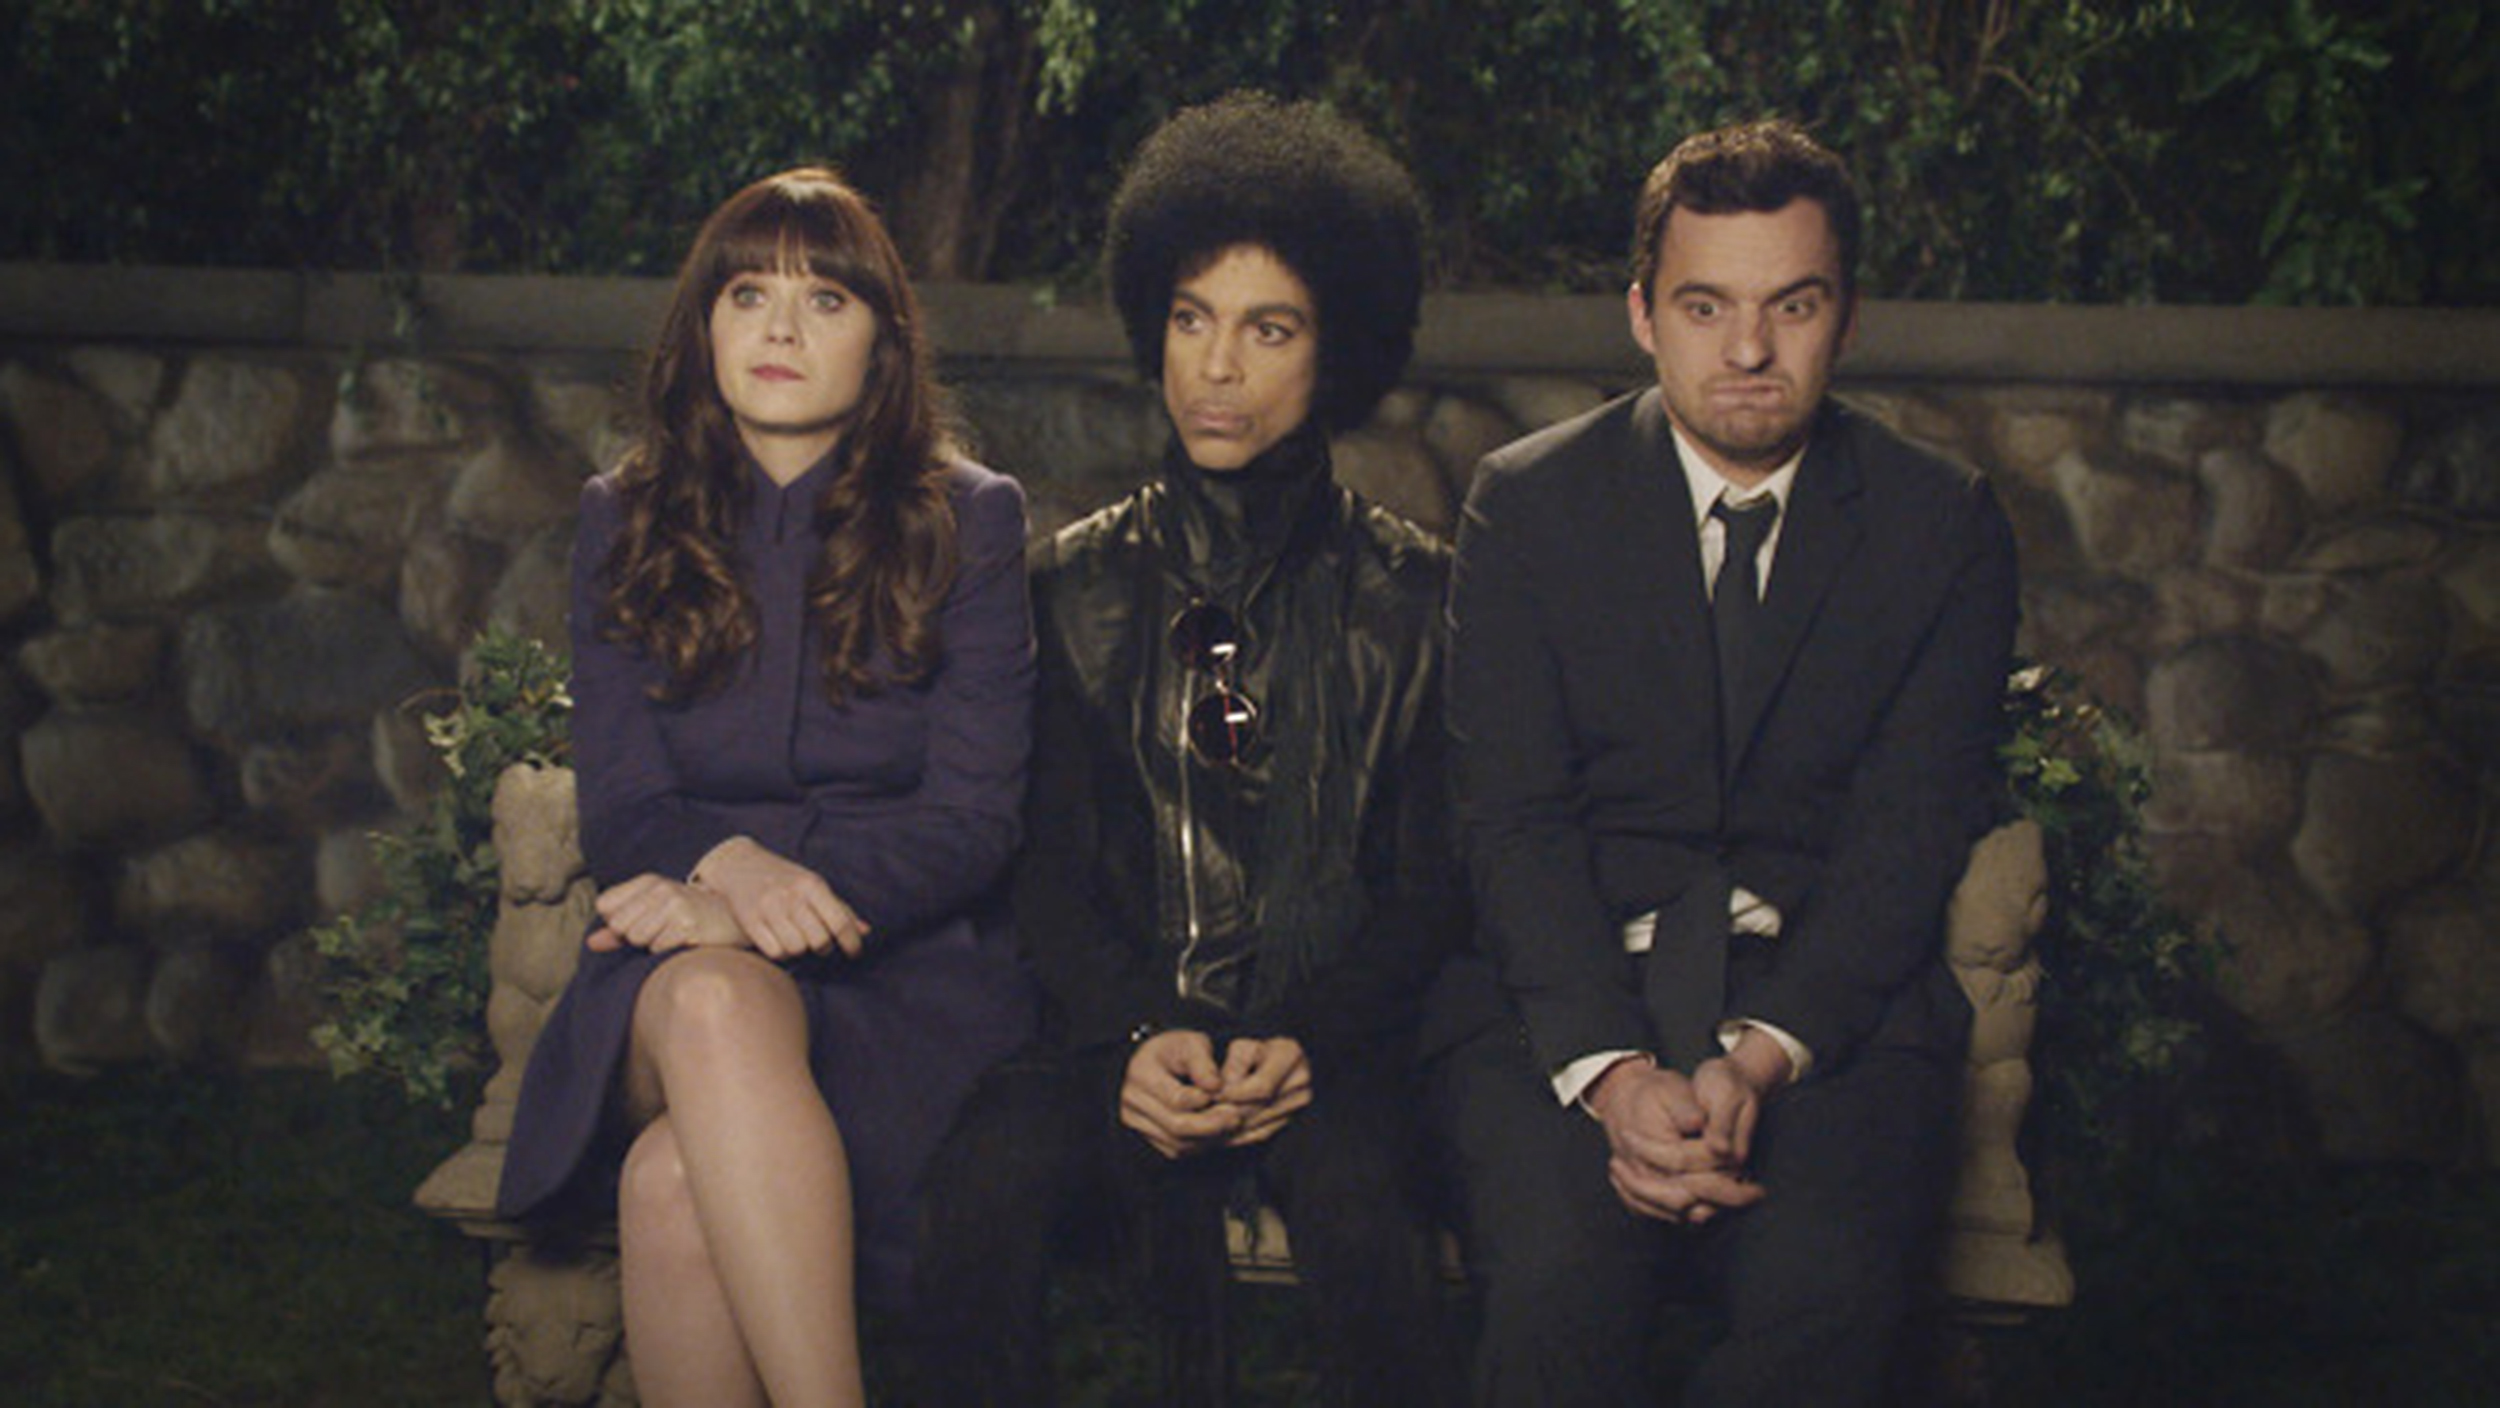 Prince gives relationship advice to Jess (Zooey Deschanel) and Nick (Jake Johnson) in Sunday's post-Super Bowl episode of